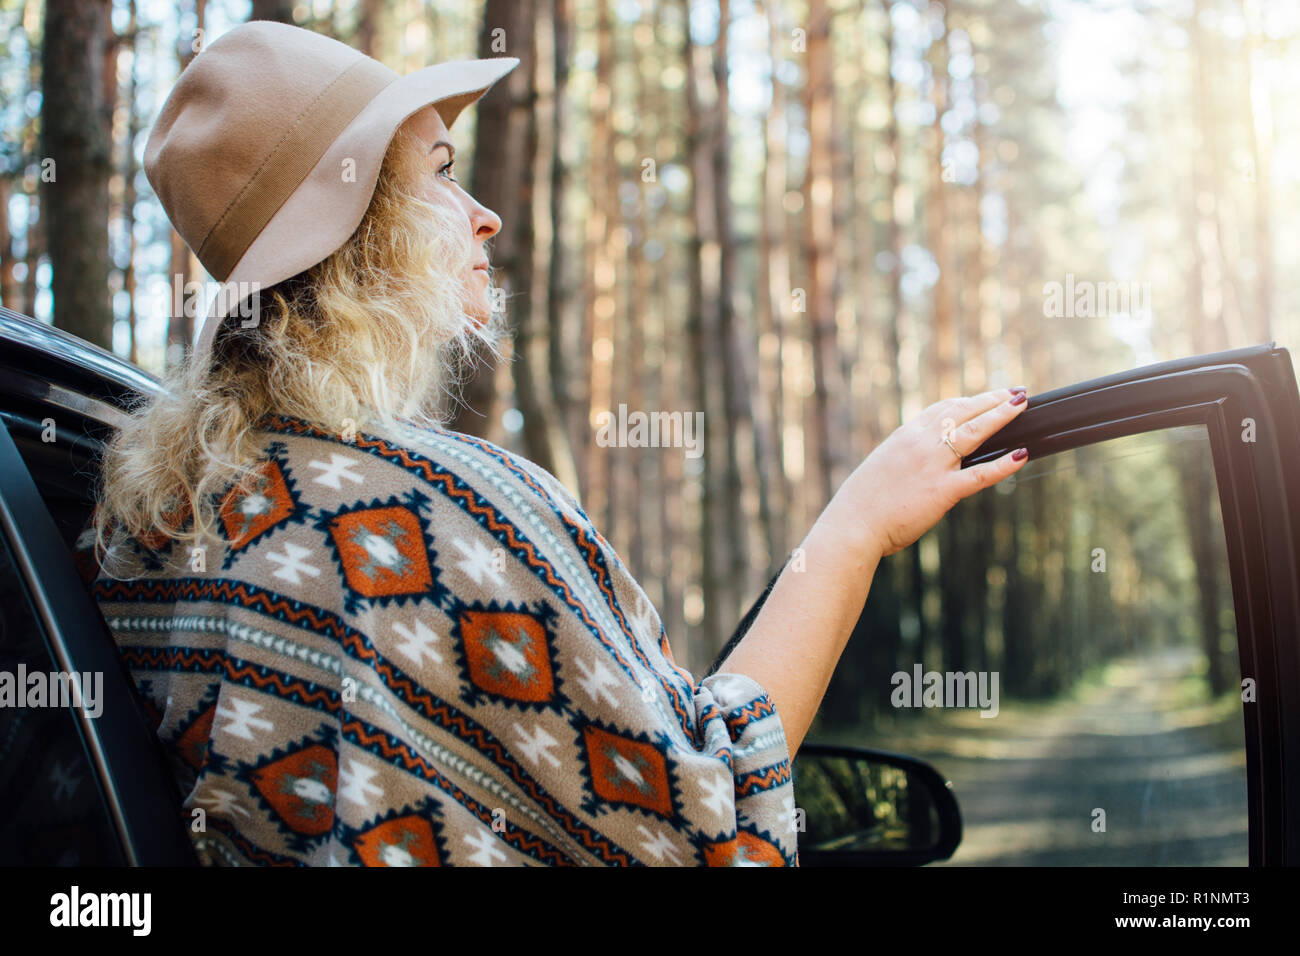 Woman in wide-brimmed felt hat and authentic poncho standing opening car door in the pine tree forest. - Stock Image